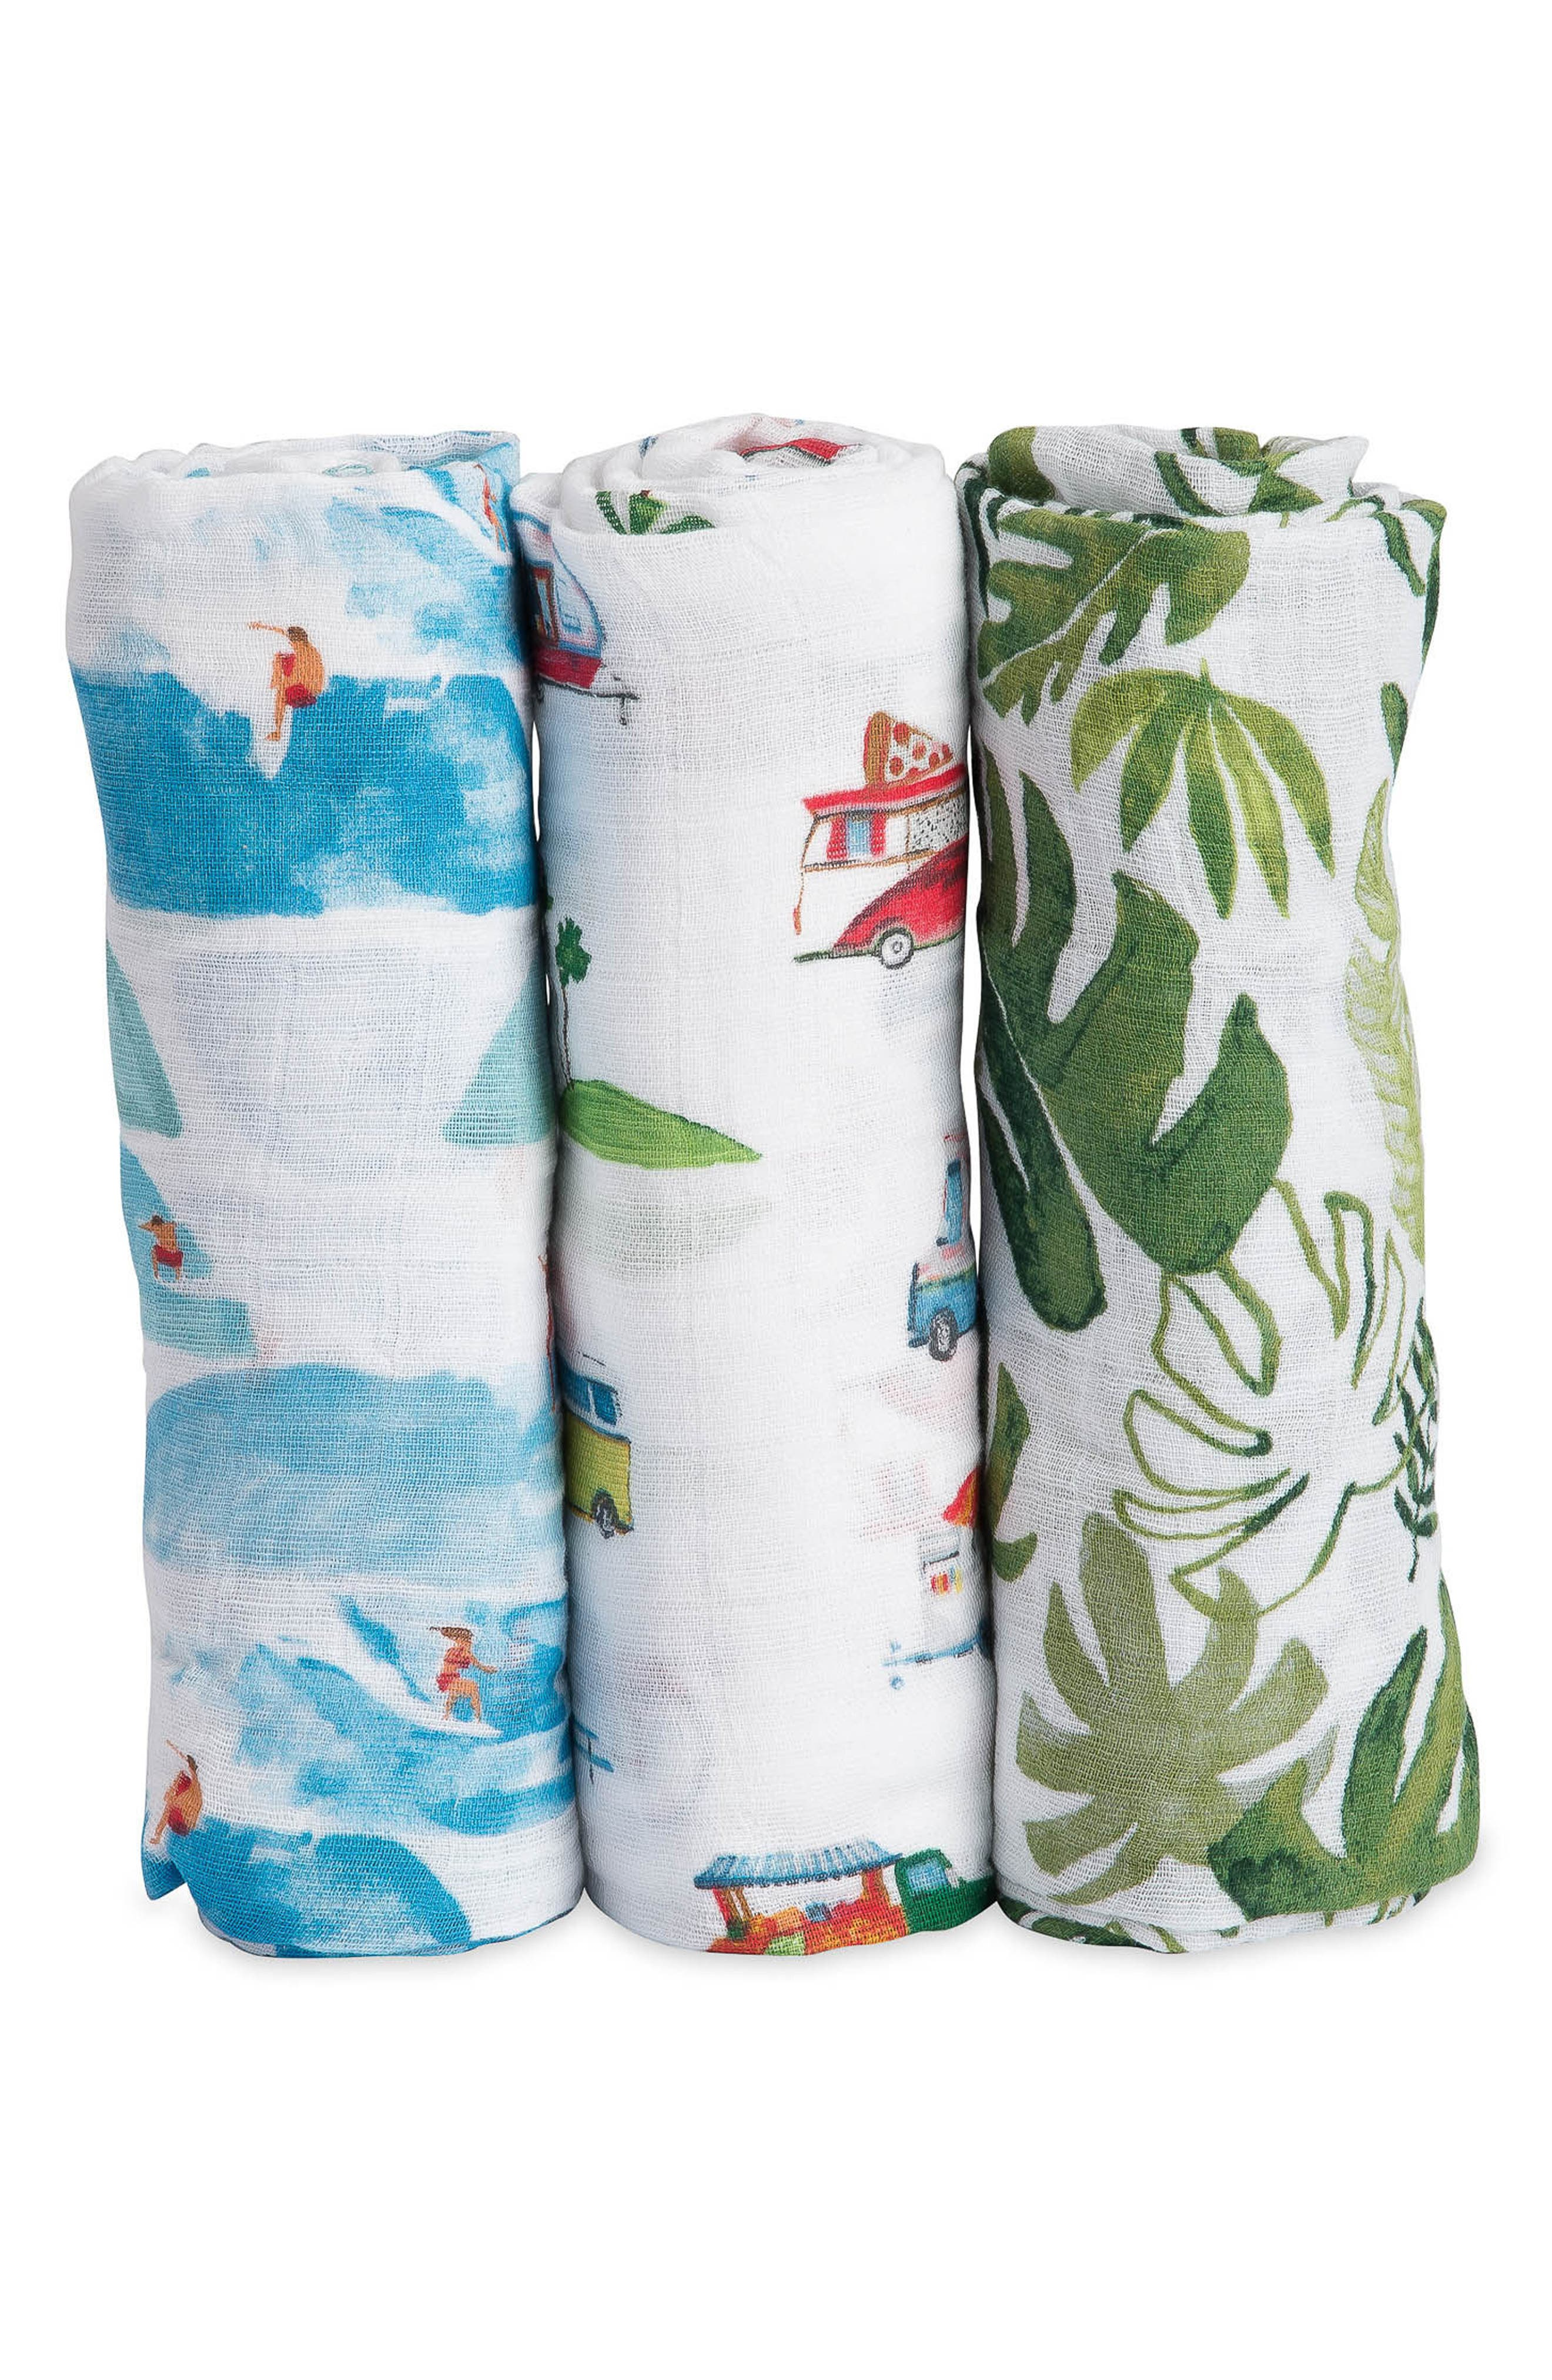 3-Pack Cotton Muslin Blankets,                             Alternate thumbnail 3, color,                             SUMMER VIBE